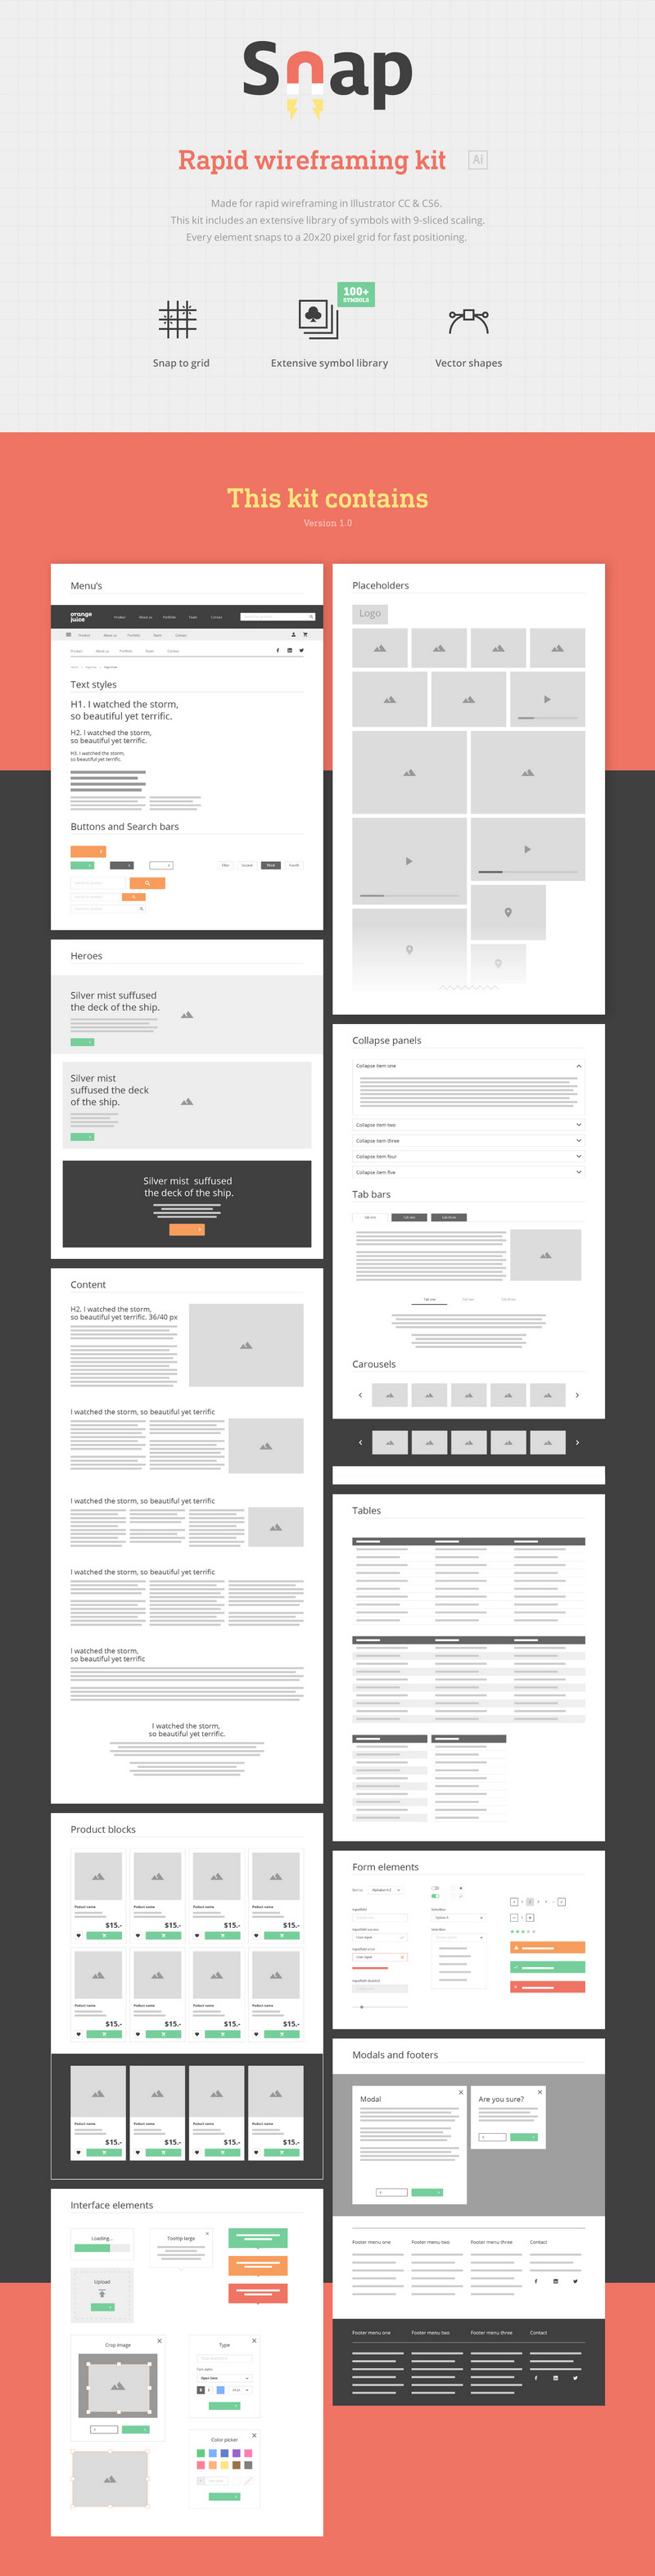 Free wireframing kit 100 symbols for illustrator bypeople for rapid wireframing it snaps to a 2020 pixel grid including a huge library of symbols 9 sliced scaling and ready to use in adobe illustrator biocorpaavc